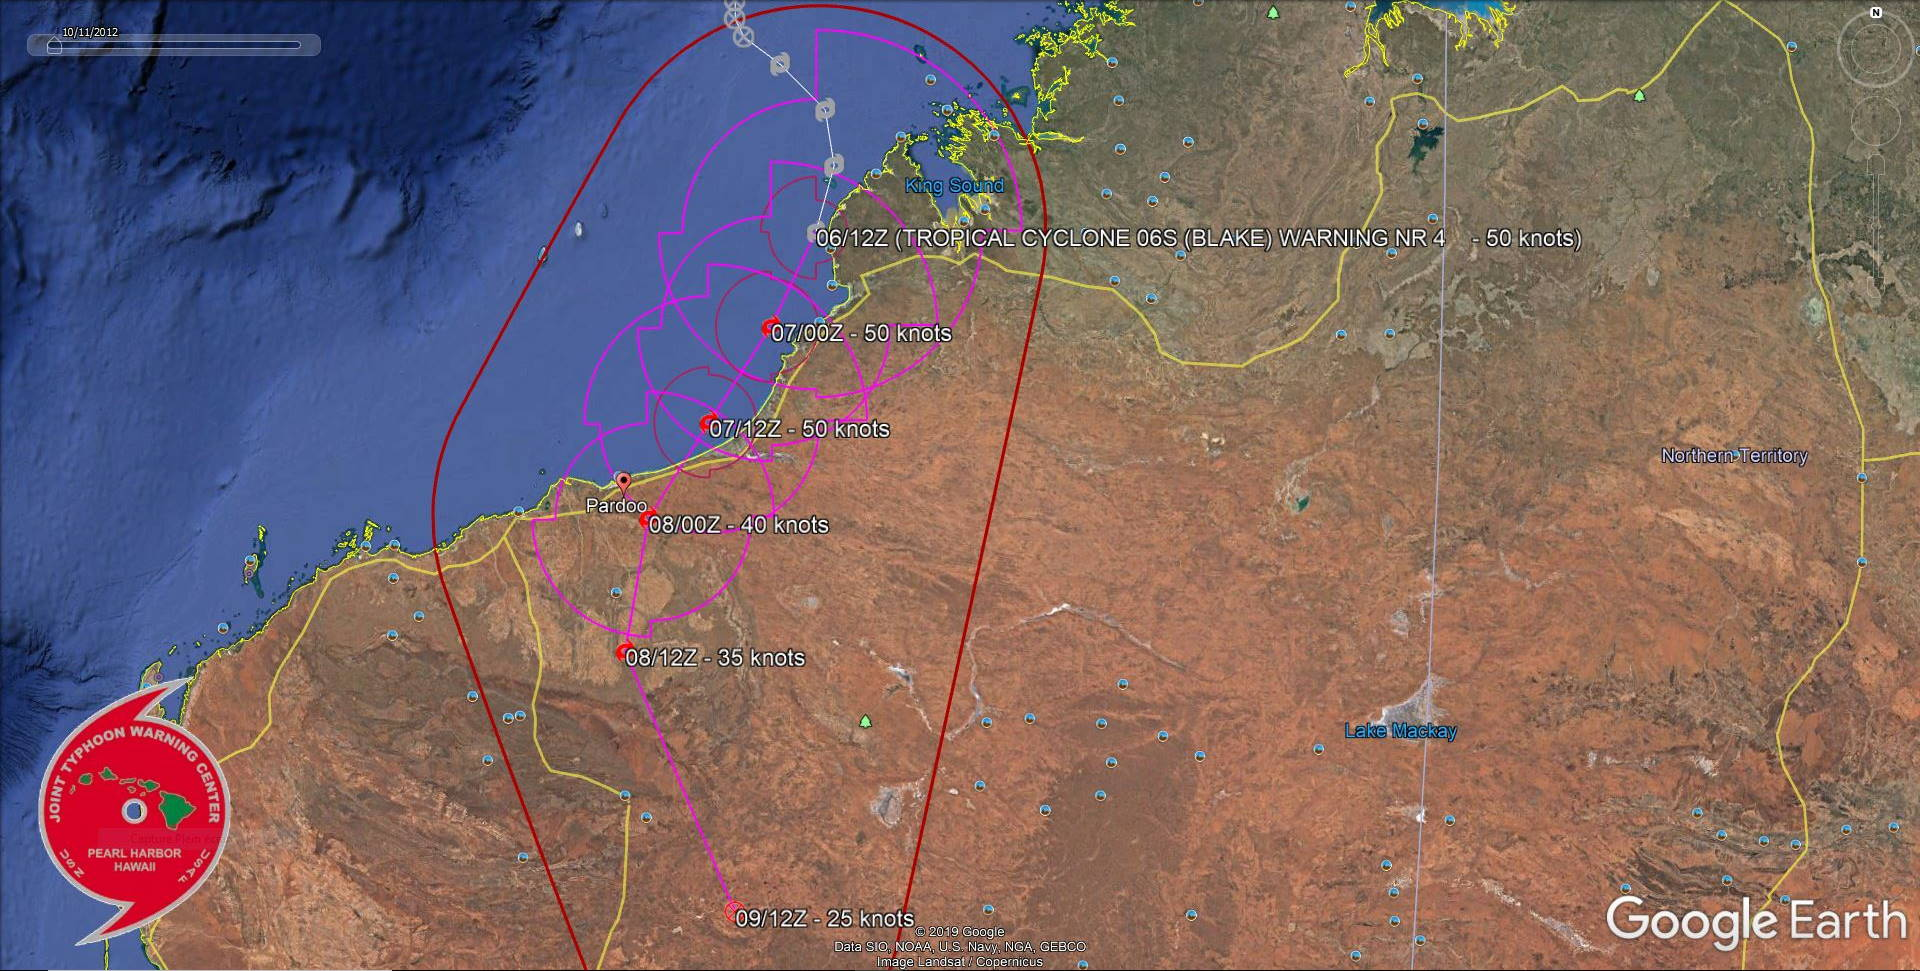 TC 06S(BLAKE) tracking just west of Broome as a 50knots cyclone